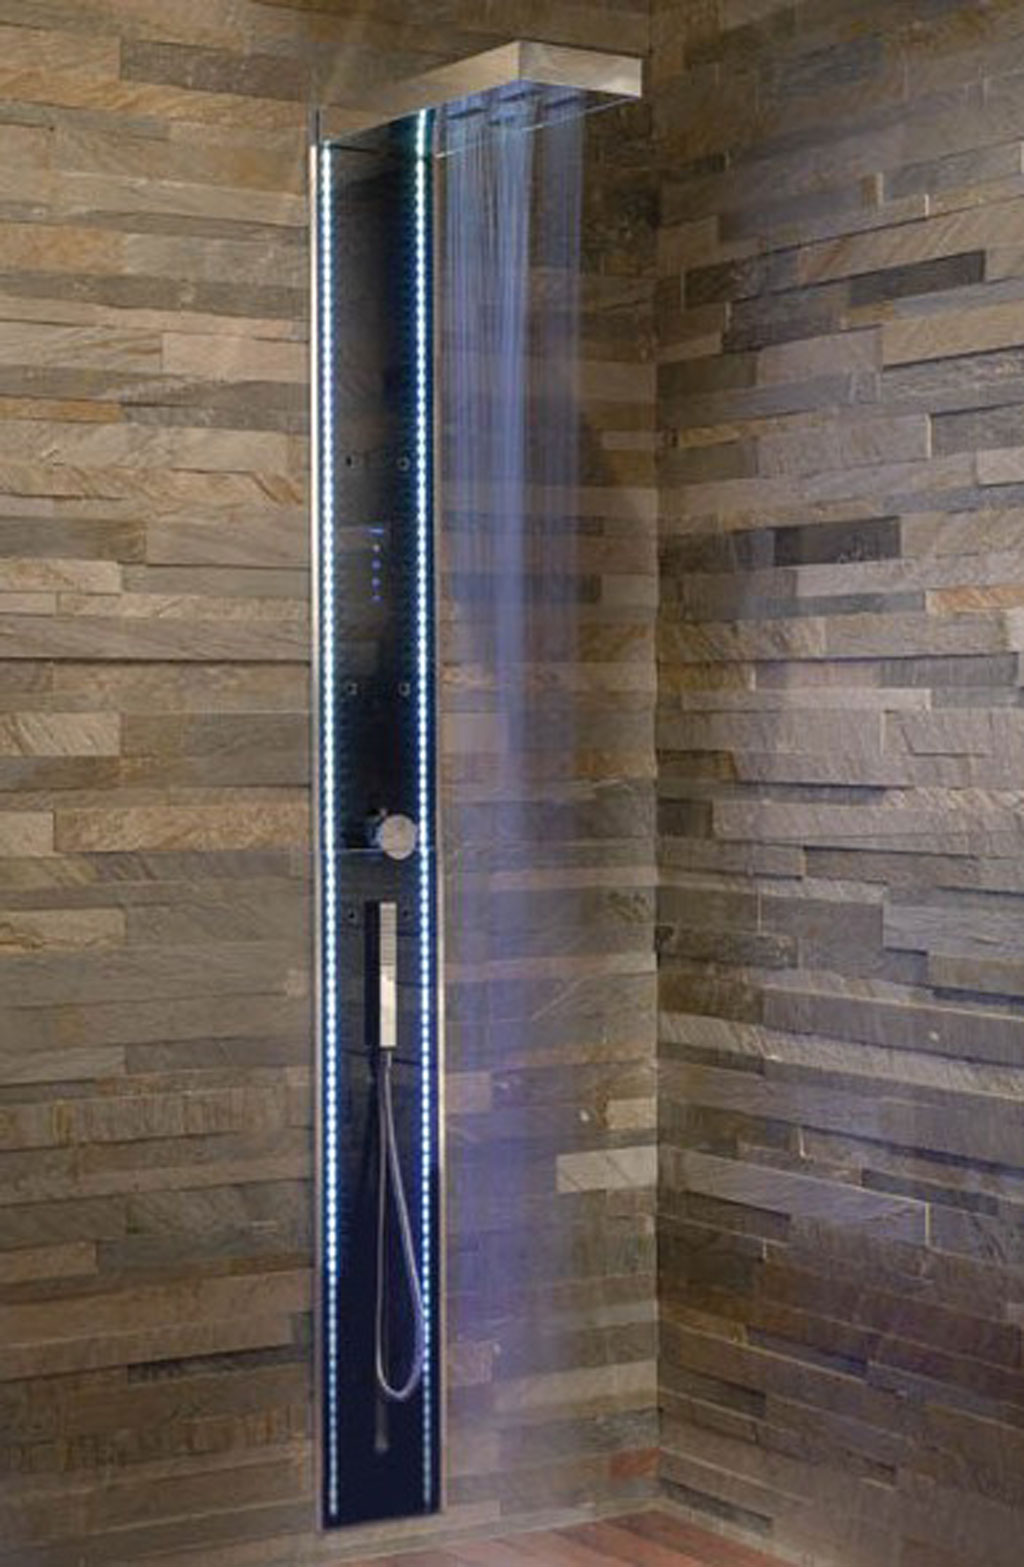 Modern bathroom tile design -  Bathroom Tile Designs Intended For Modern Tile Designs